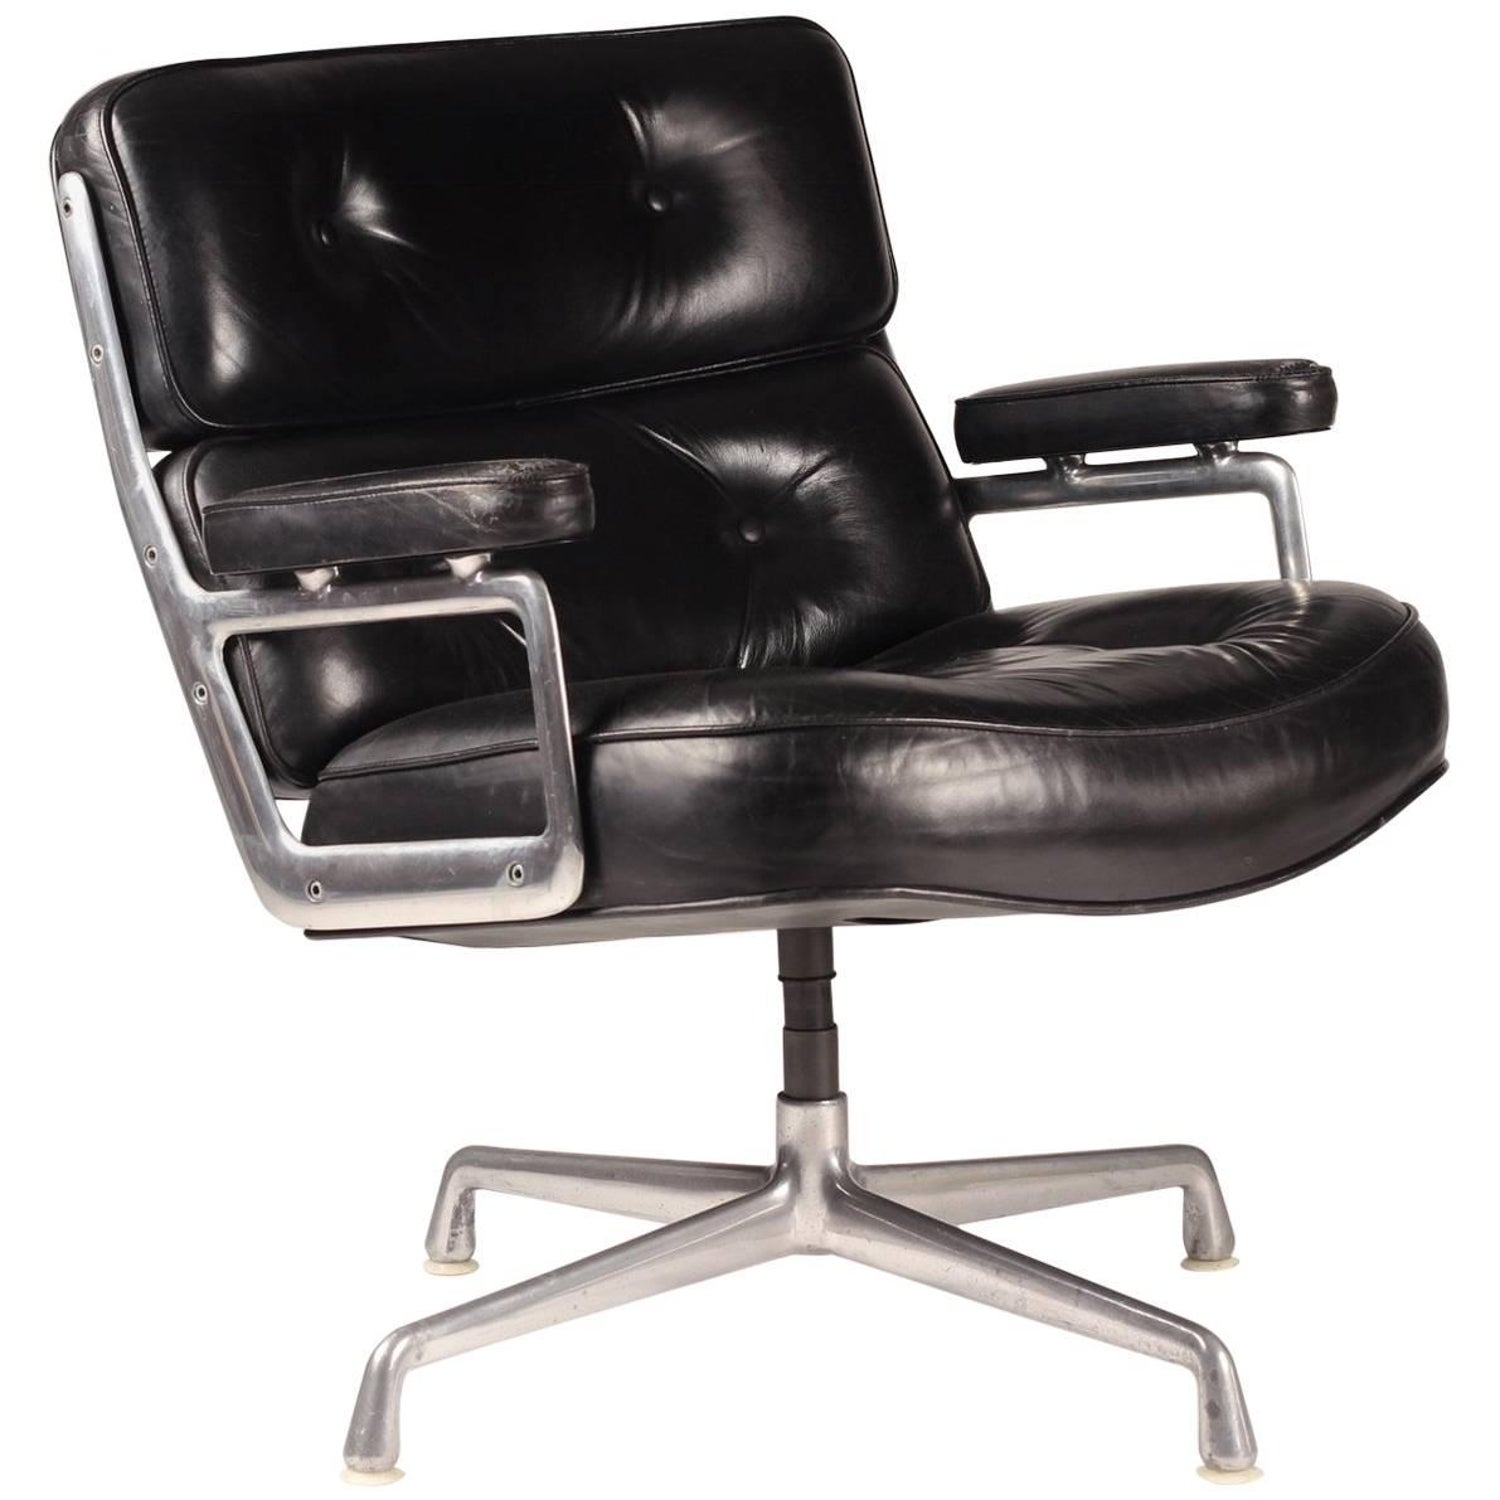 Herman Miller Swivel Chairs 29 For Sale at 1stdibs